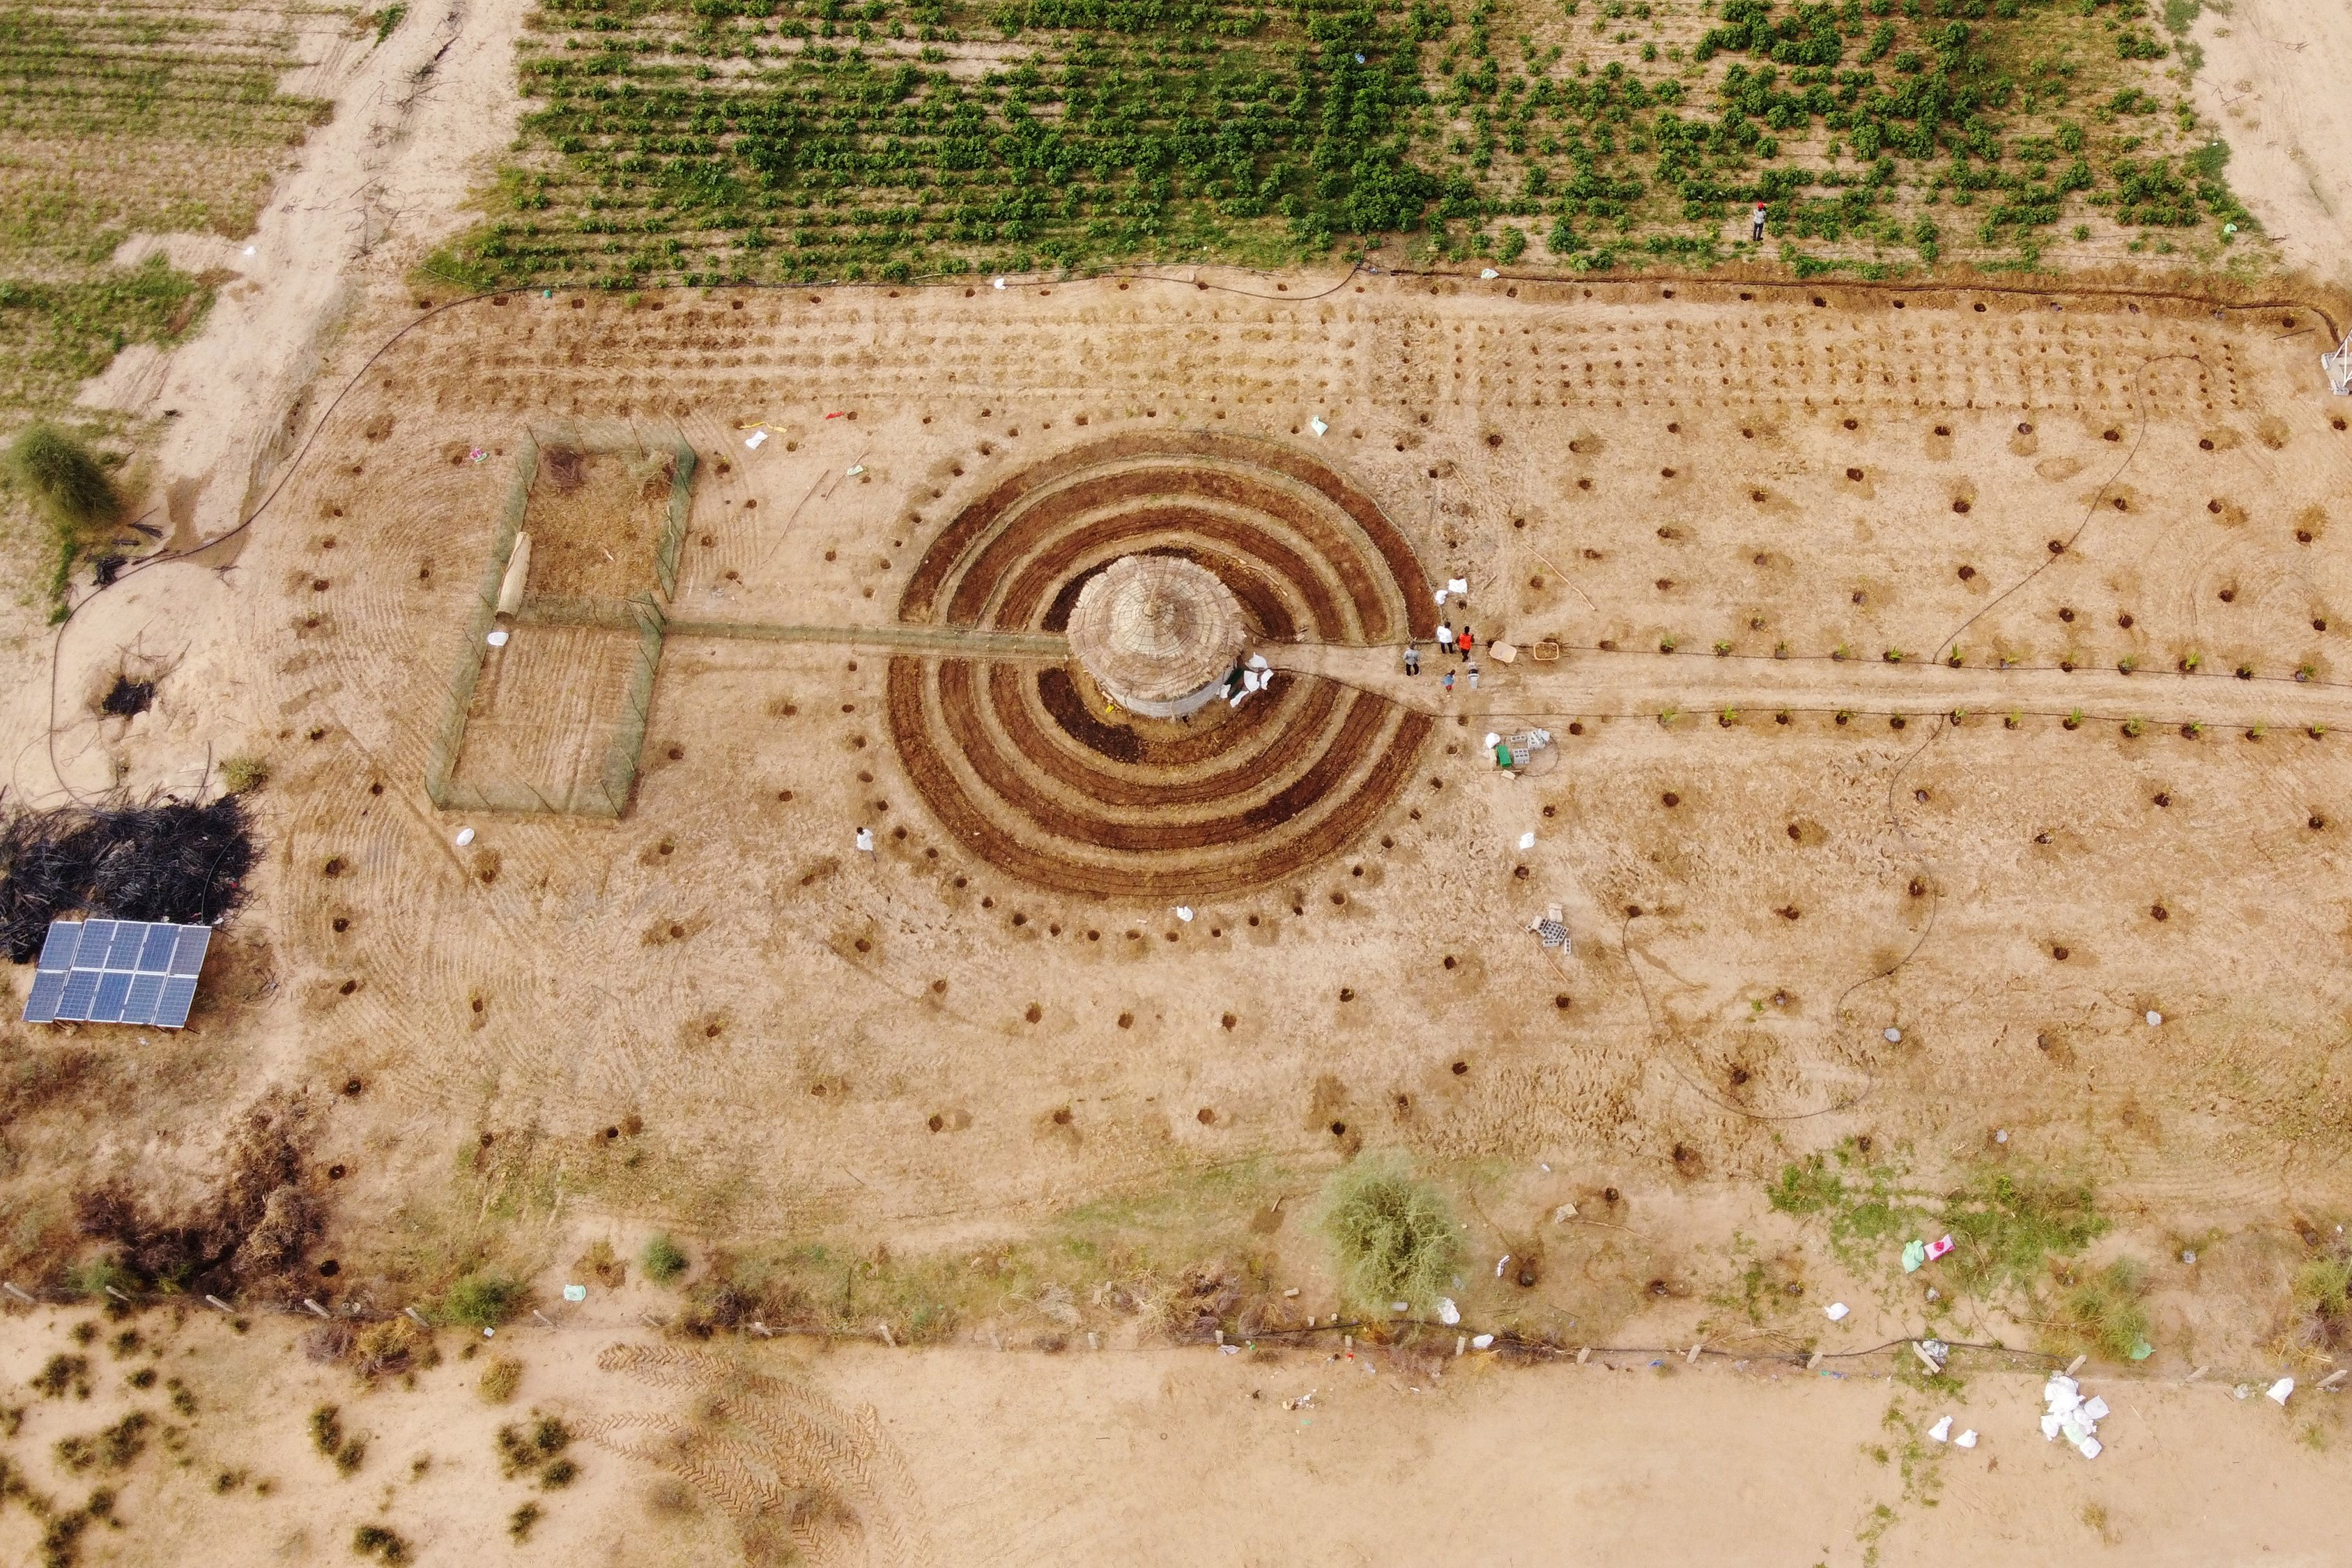 An aerial view shows participants of a Tolou Keur programme working on a newly built Tolou Keur garden in Boki Diawe, within the Great Green Wall area, in Matam region, Senegal, July 10, 2021.   REUTERS/Zohra Bensemra